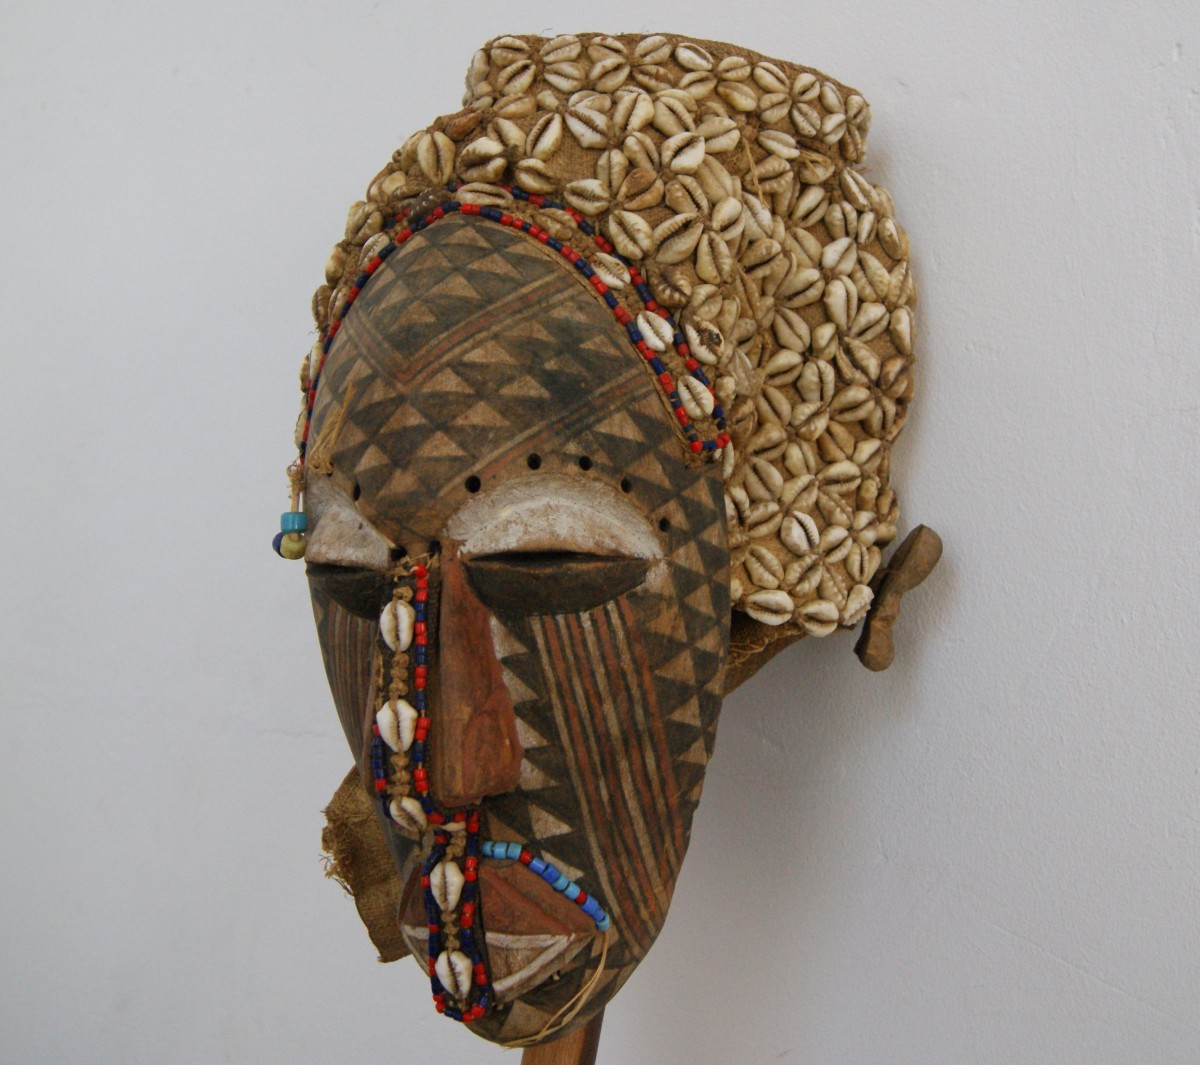 Ancient Ceremonial Mask with Cowries